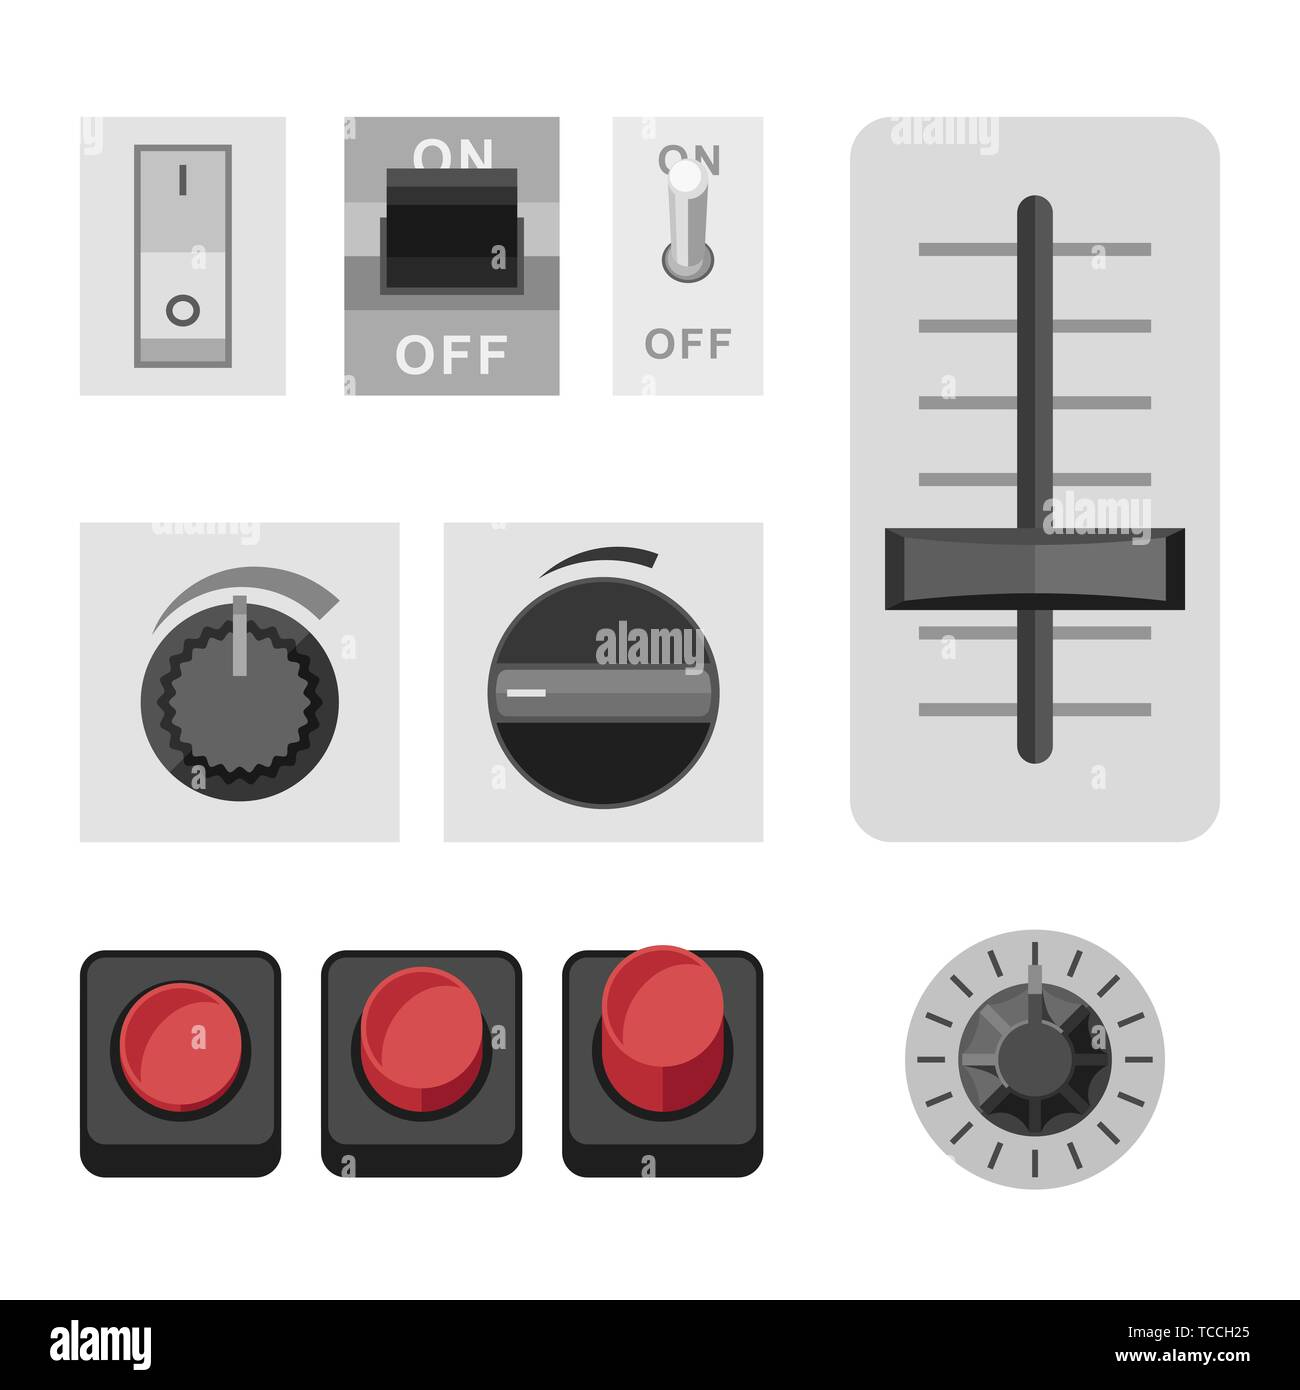 Switches flat icons - Stock Vector